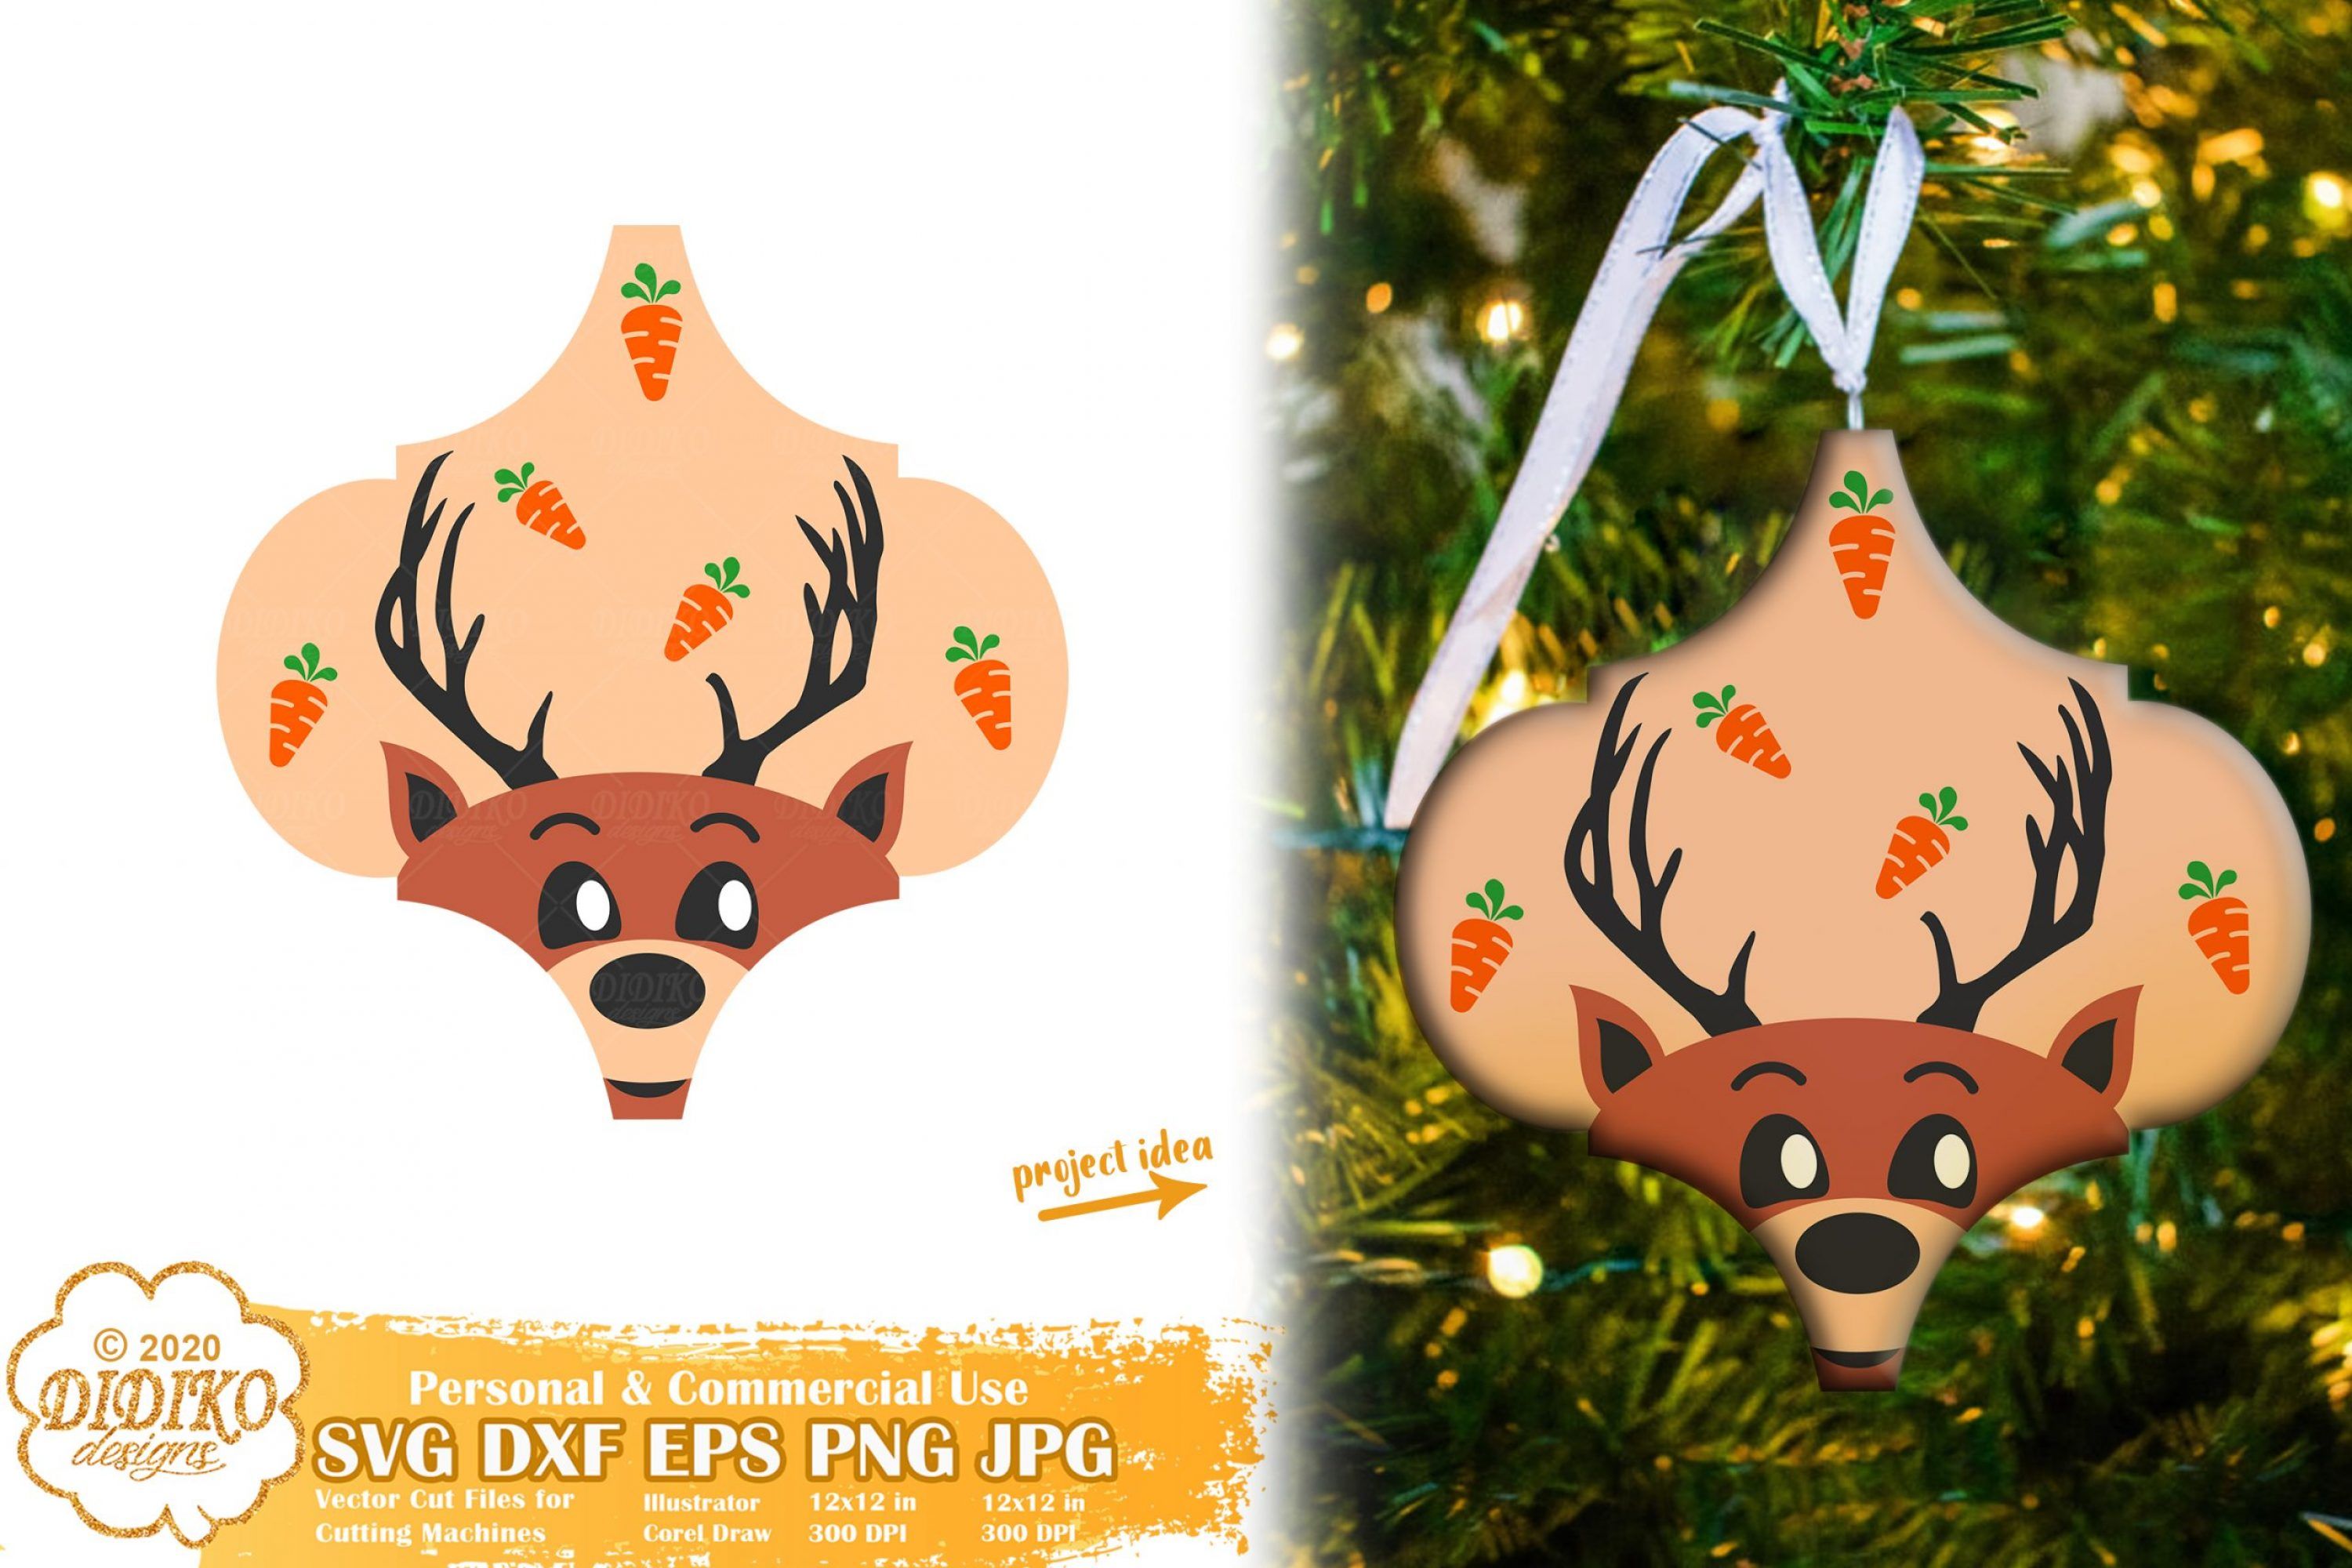 Arabesque Tile Ornament SVG #3, Santa's Reindeer Svg